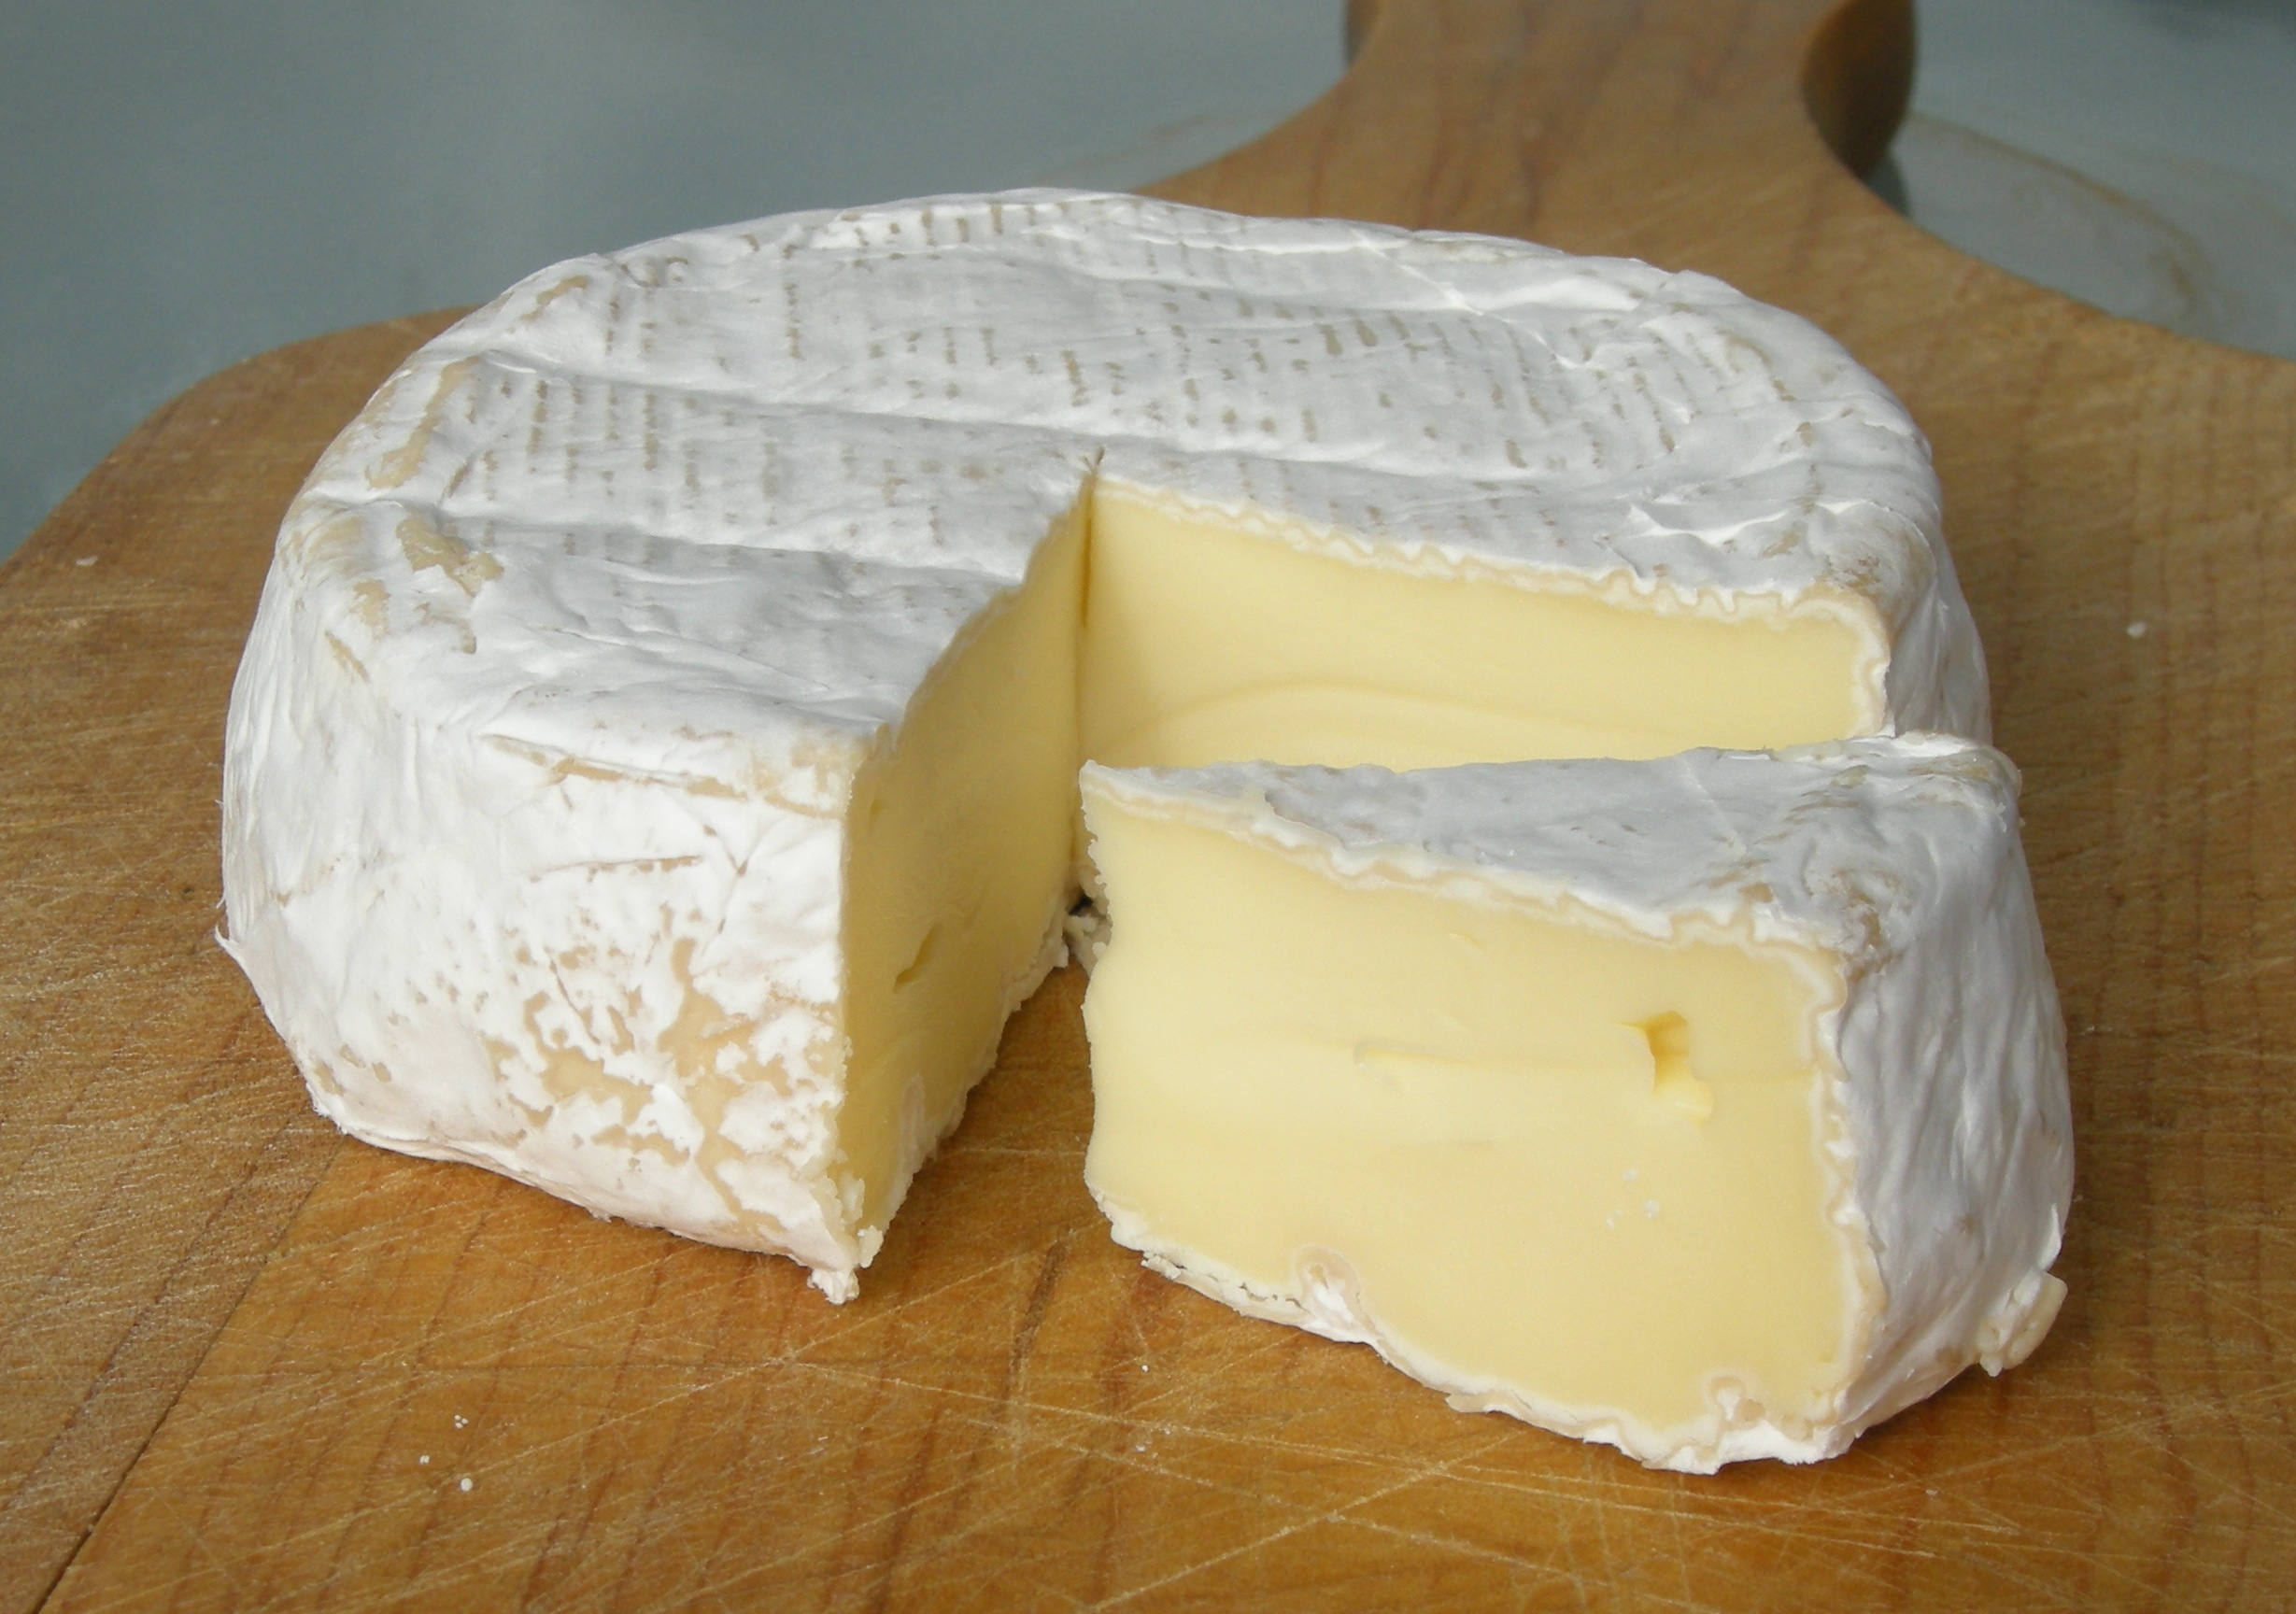 Monforte Dairy's Bliss makes our Best Bites list for the second time.